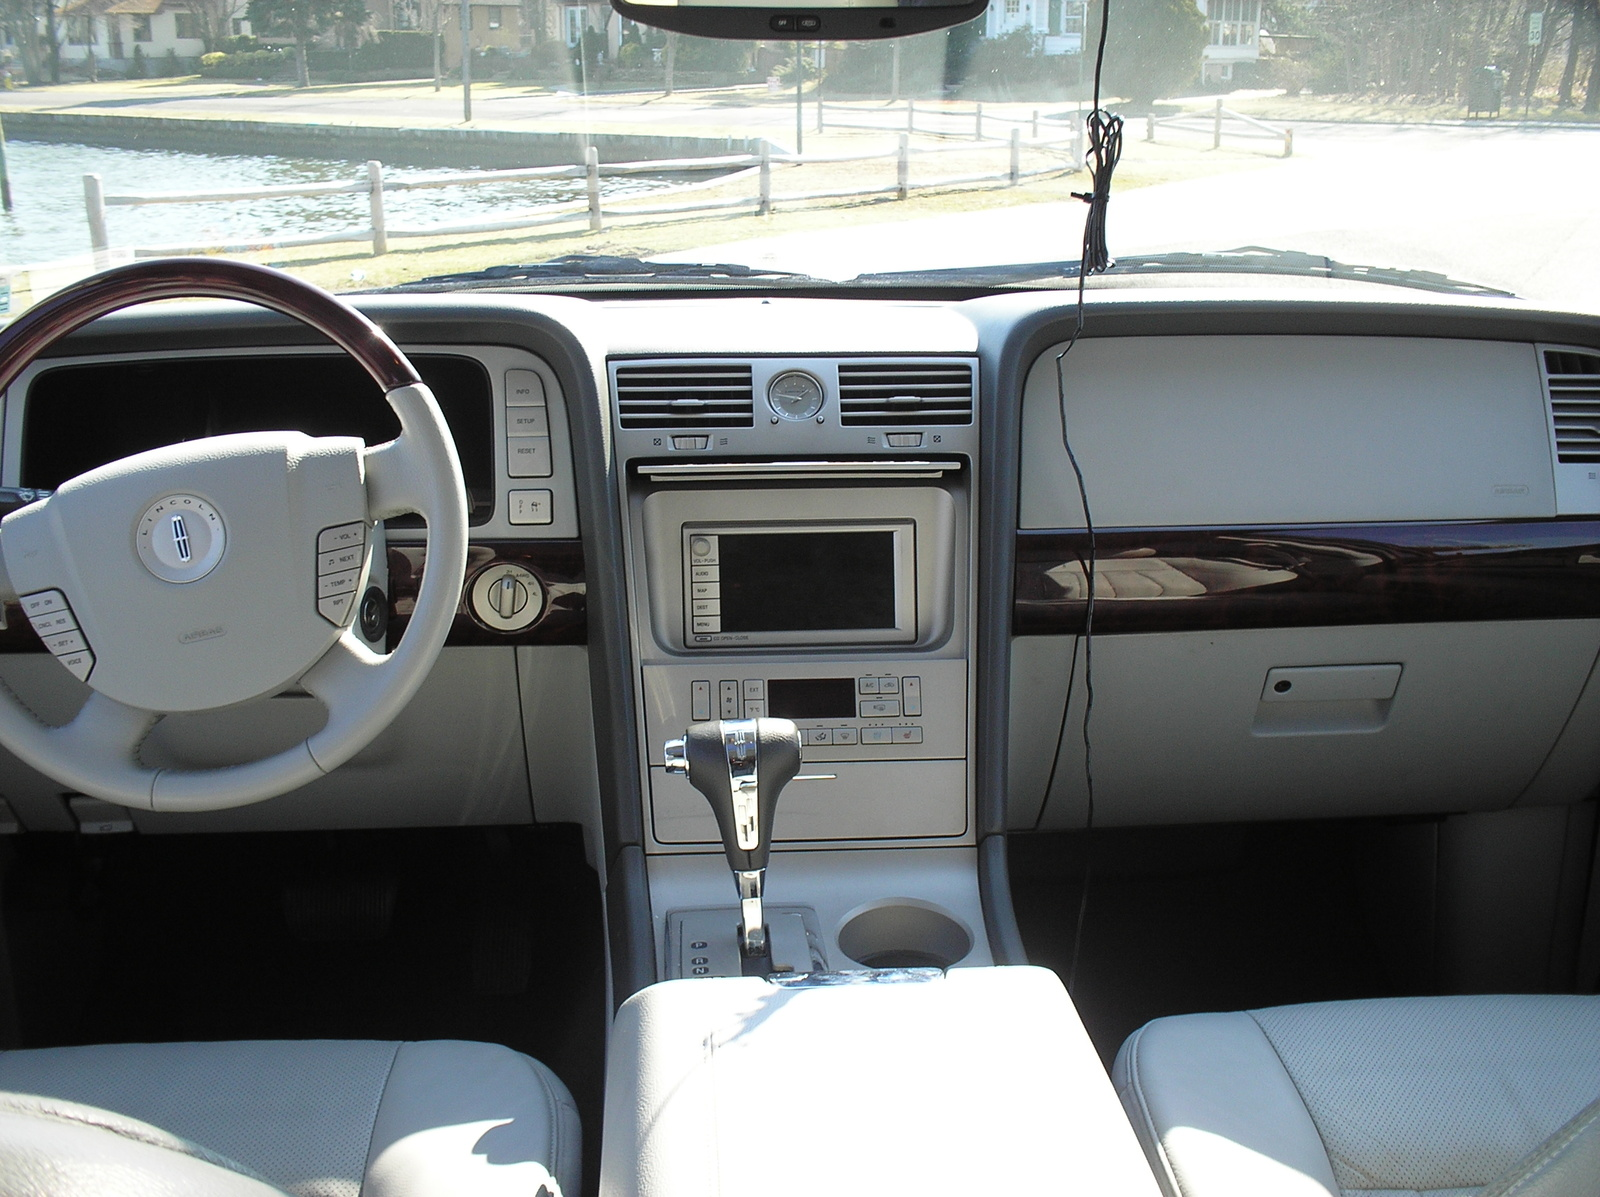 Lincoln Aviator interior #2